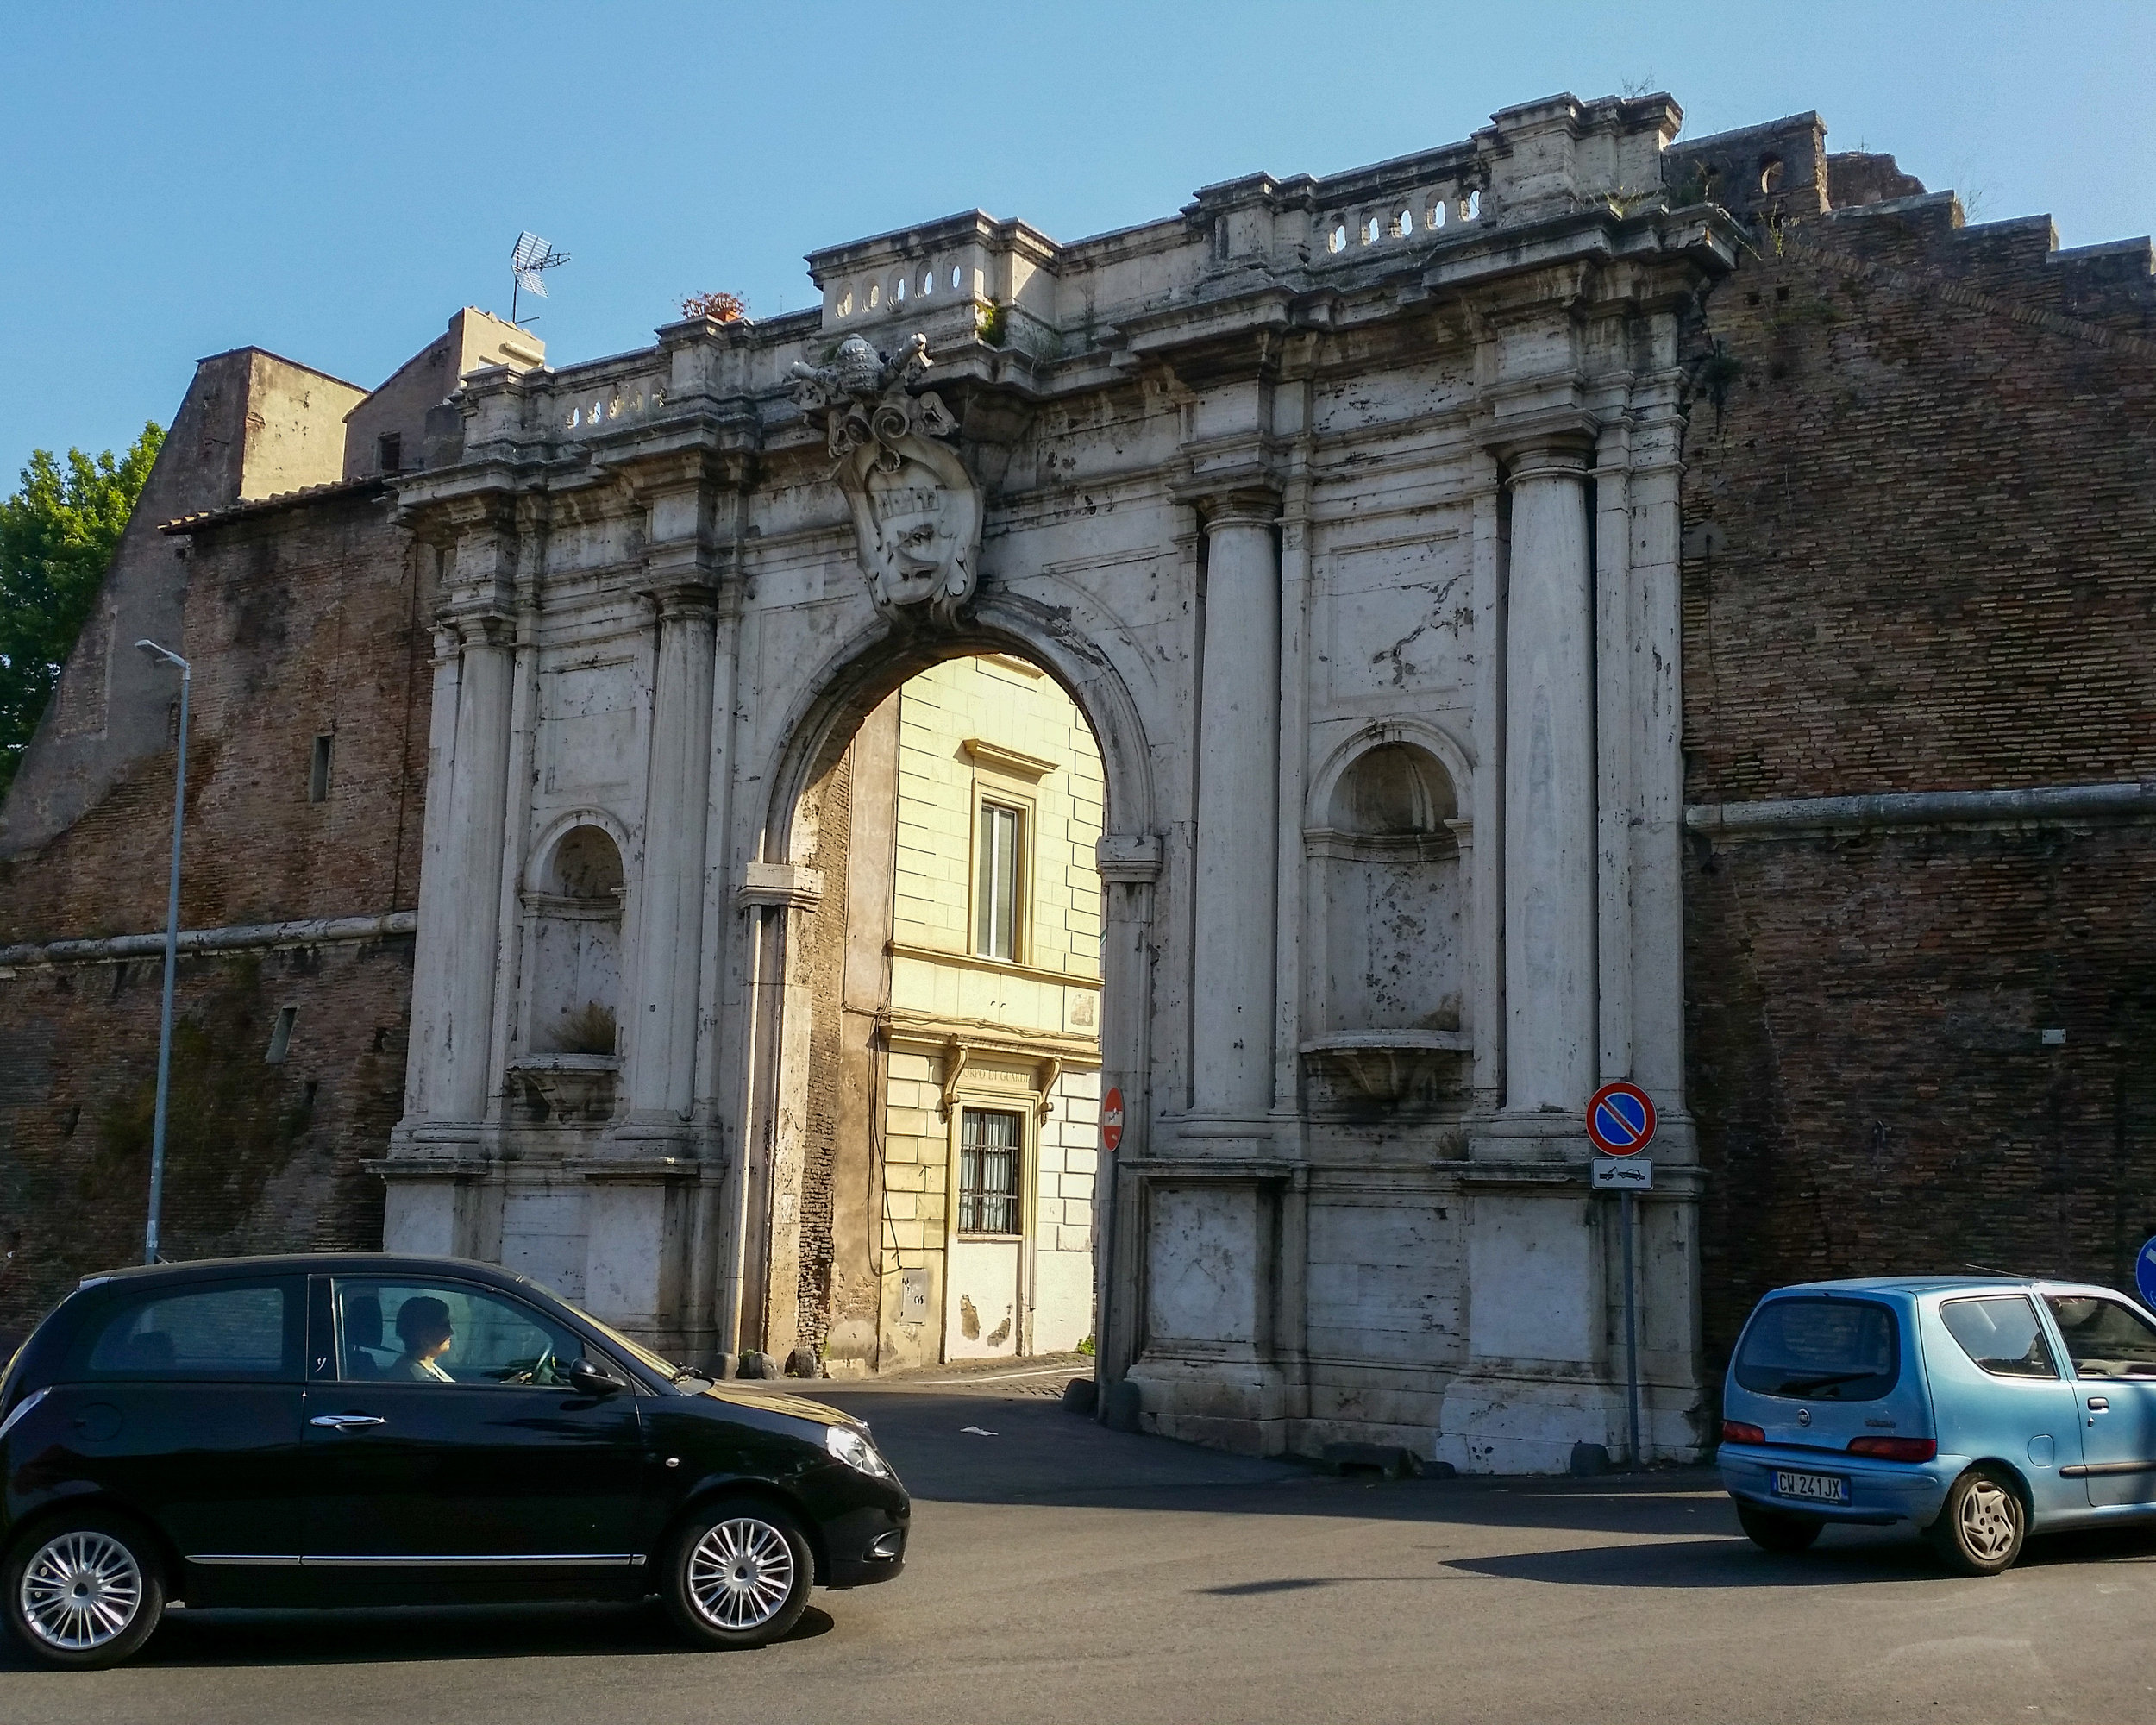 A rather handsome arch spied on a morning jog through Rome, Italy. Gee that was a tough, hot run but worth it!